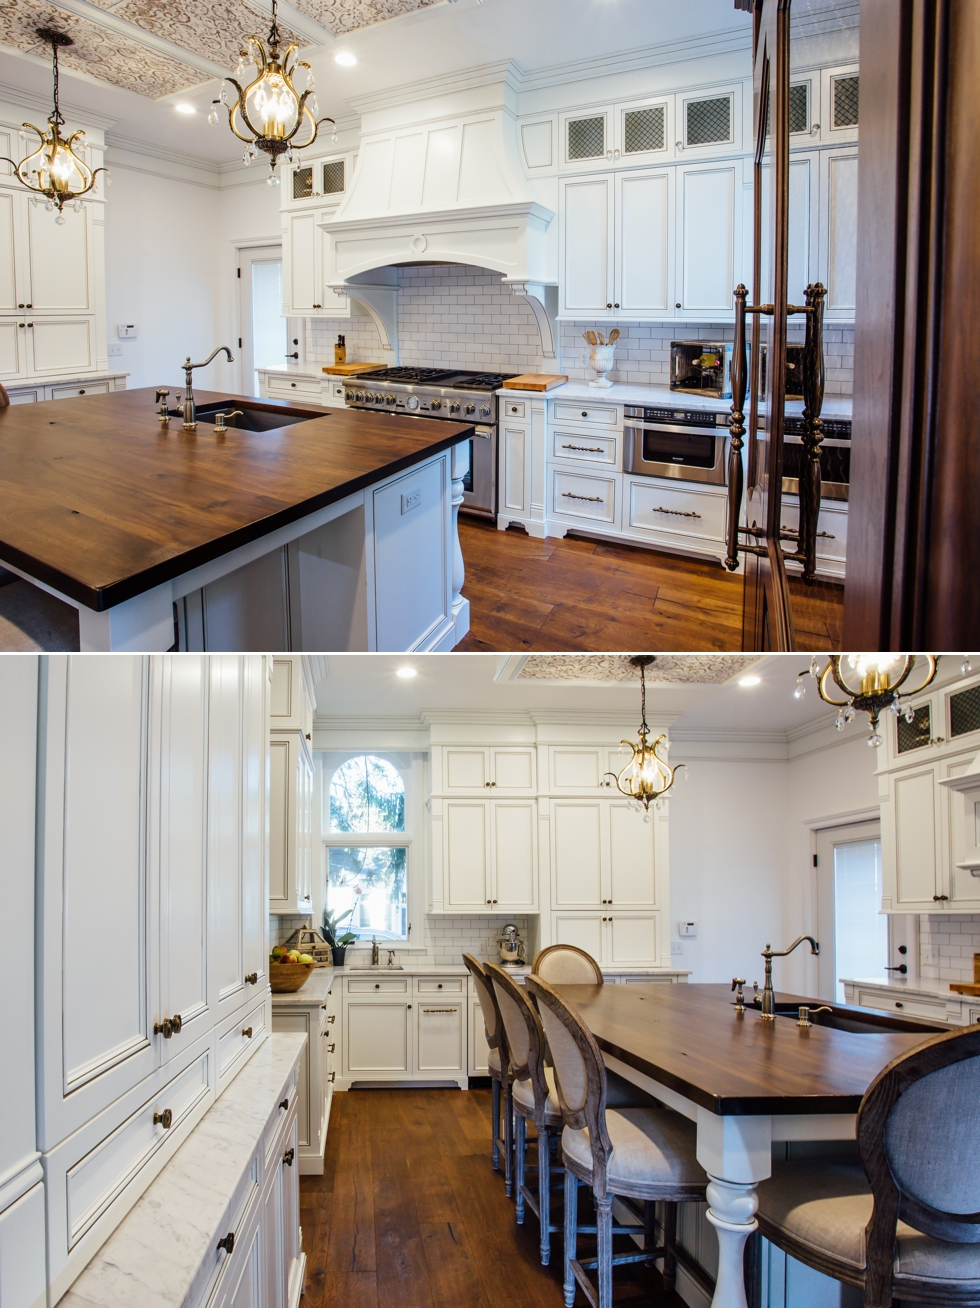 White Glazed Kitchen with Walnut Countertop - Elite Designs International - Custom Cabinetry & Millwork Buffalo & Western New York #carraramarble #subwaytile #appliancepanels #wood